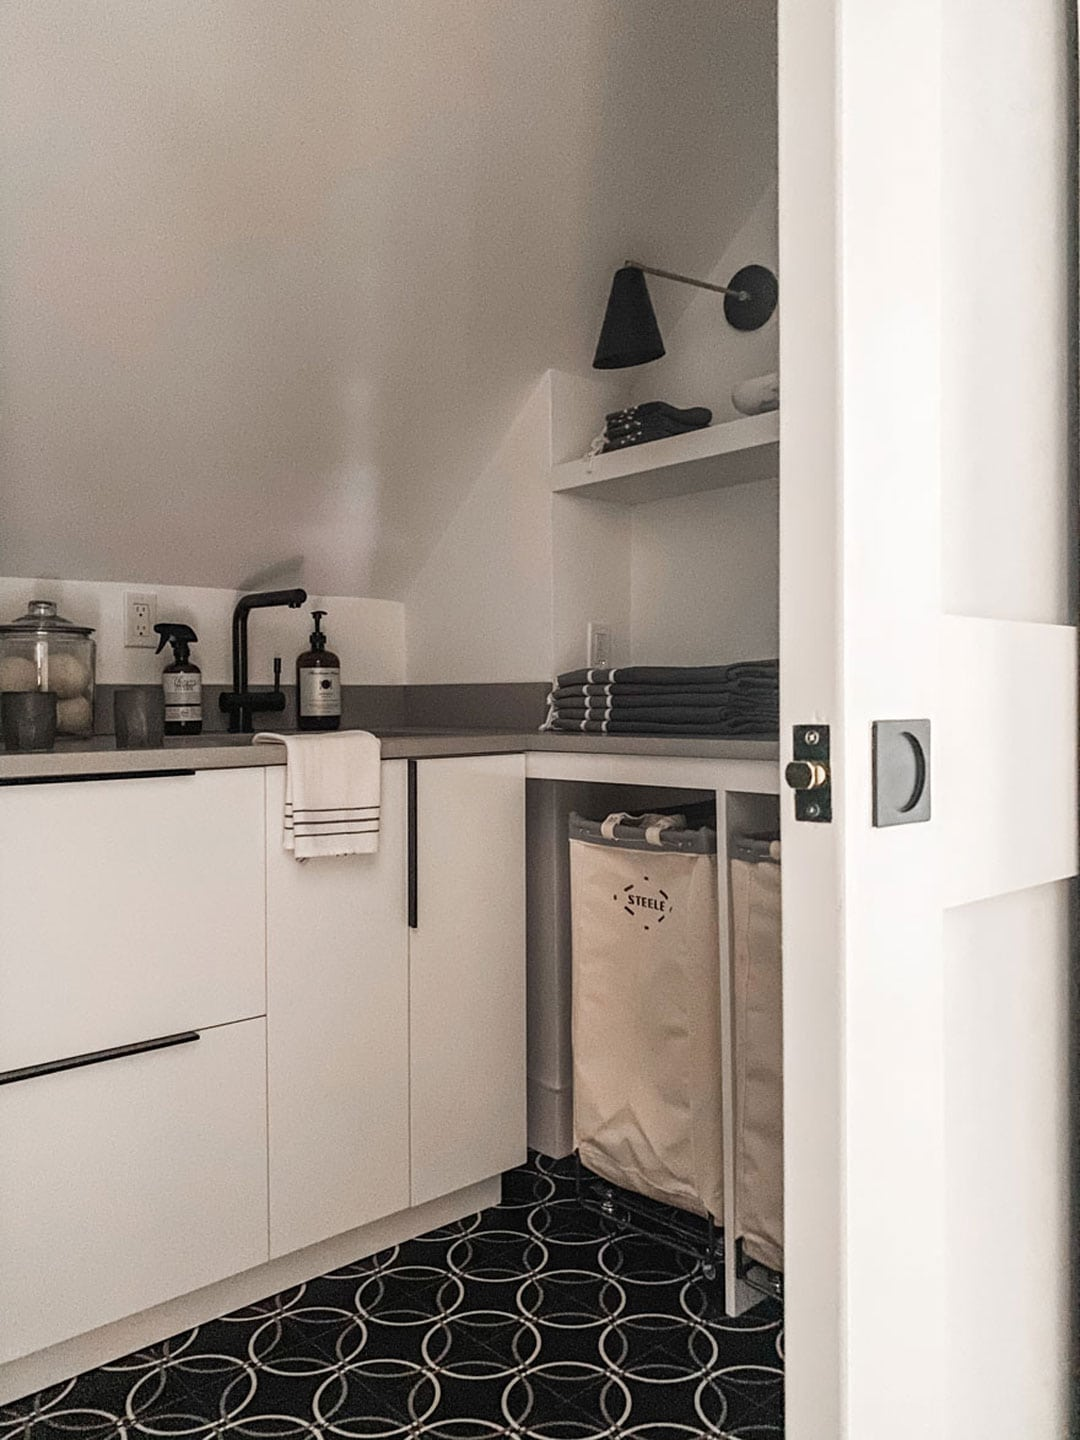 white cabinets, sink, laundry bins. sconce